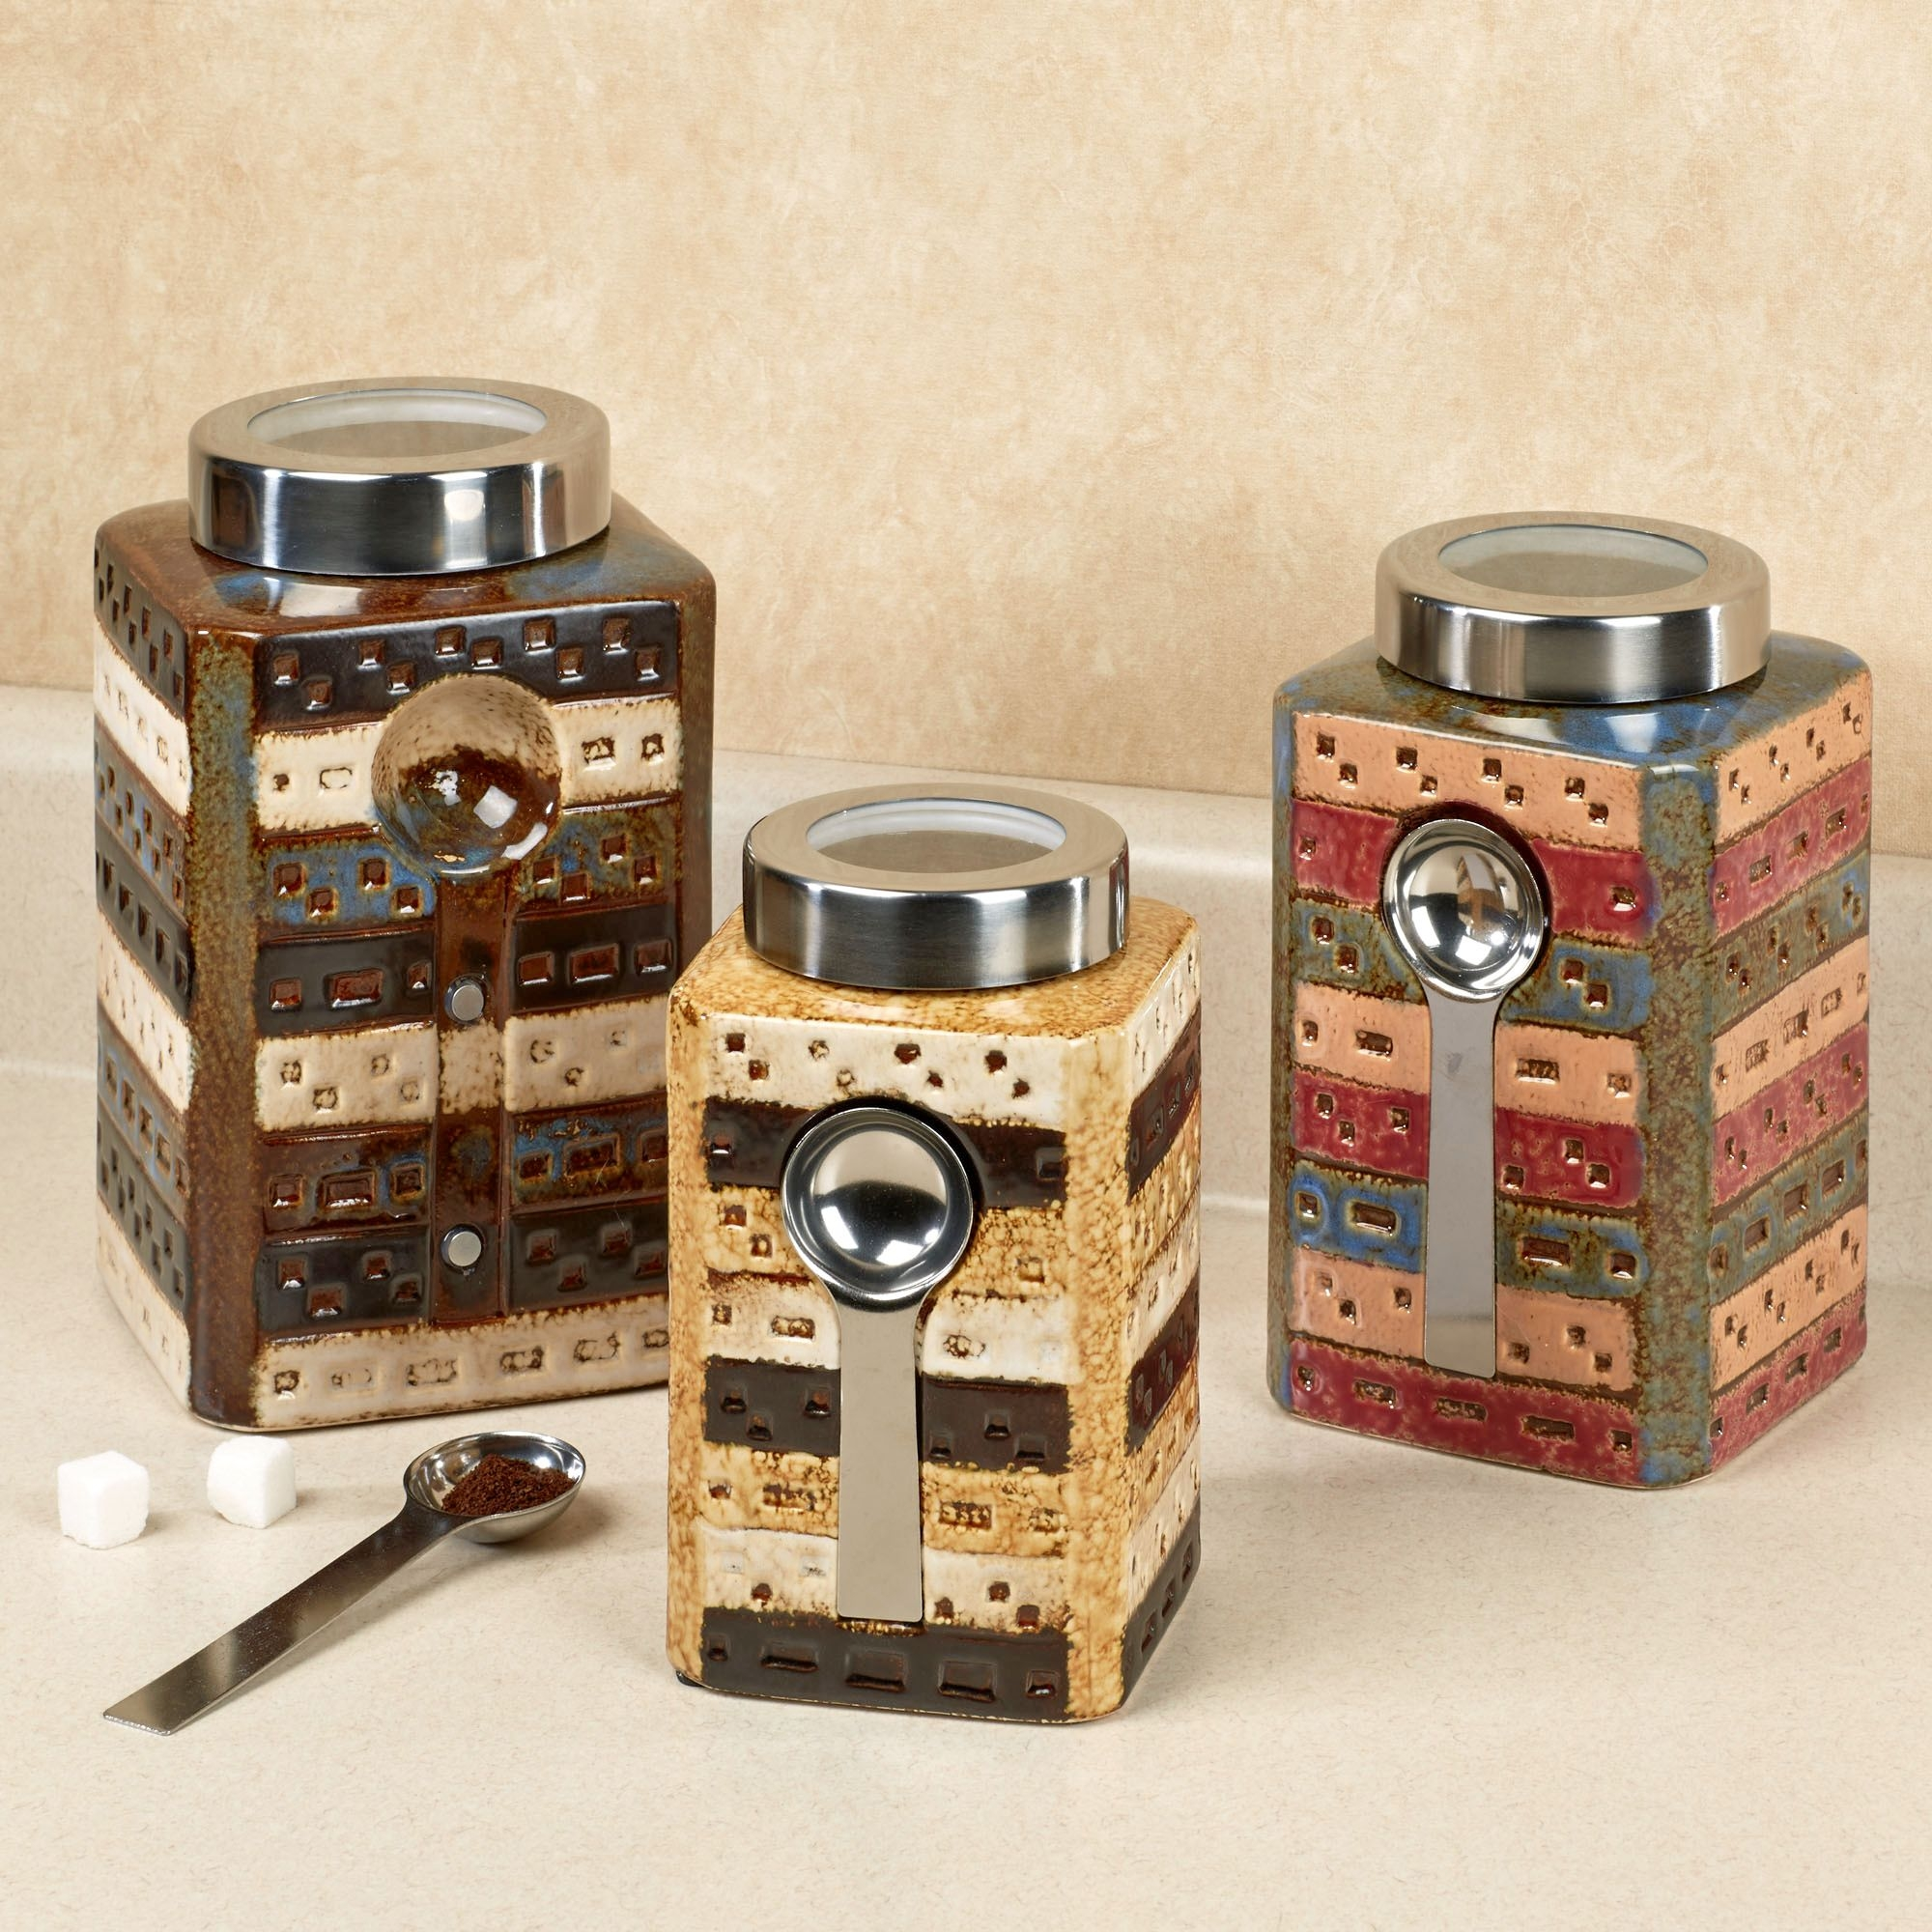 Rustic Kitchen Canister Setsmatteo ceramic kitchen canister sets with spoon for kitchen